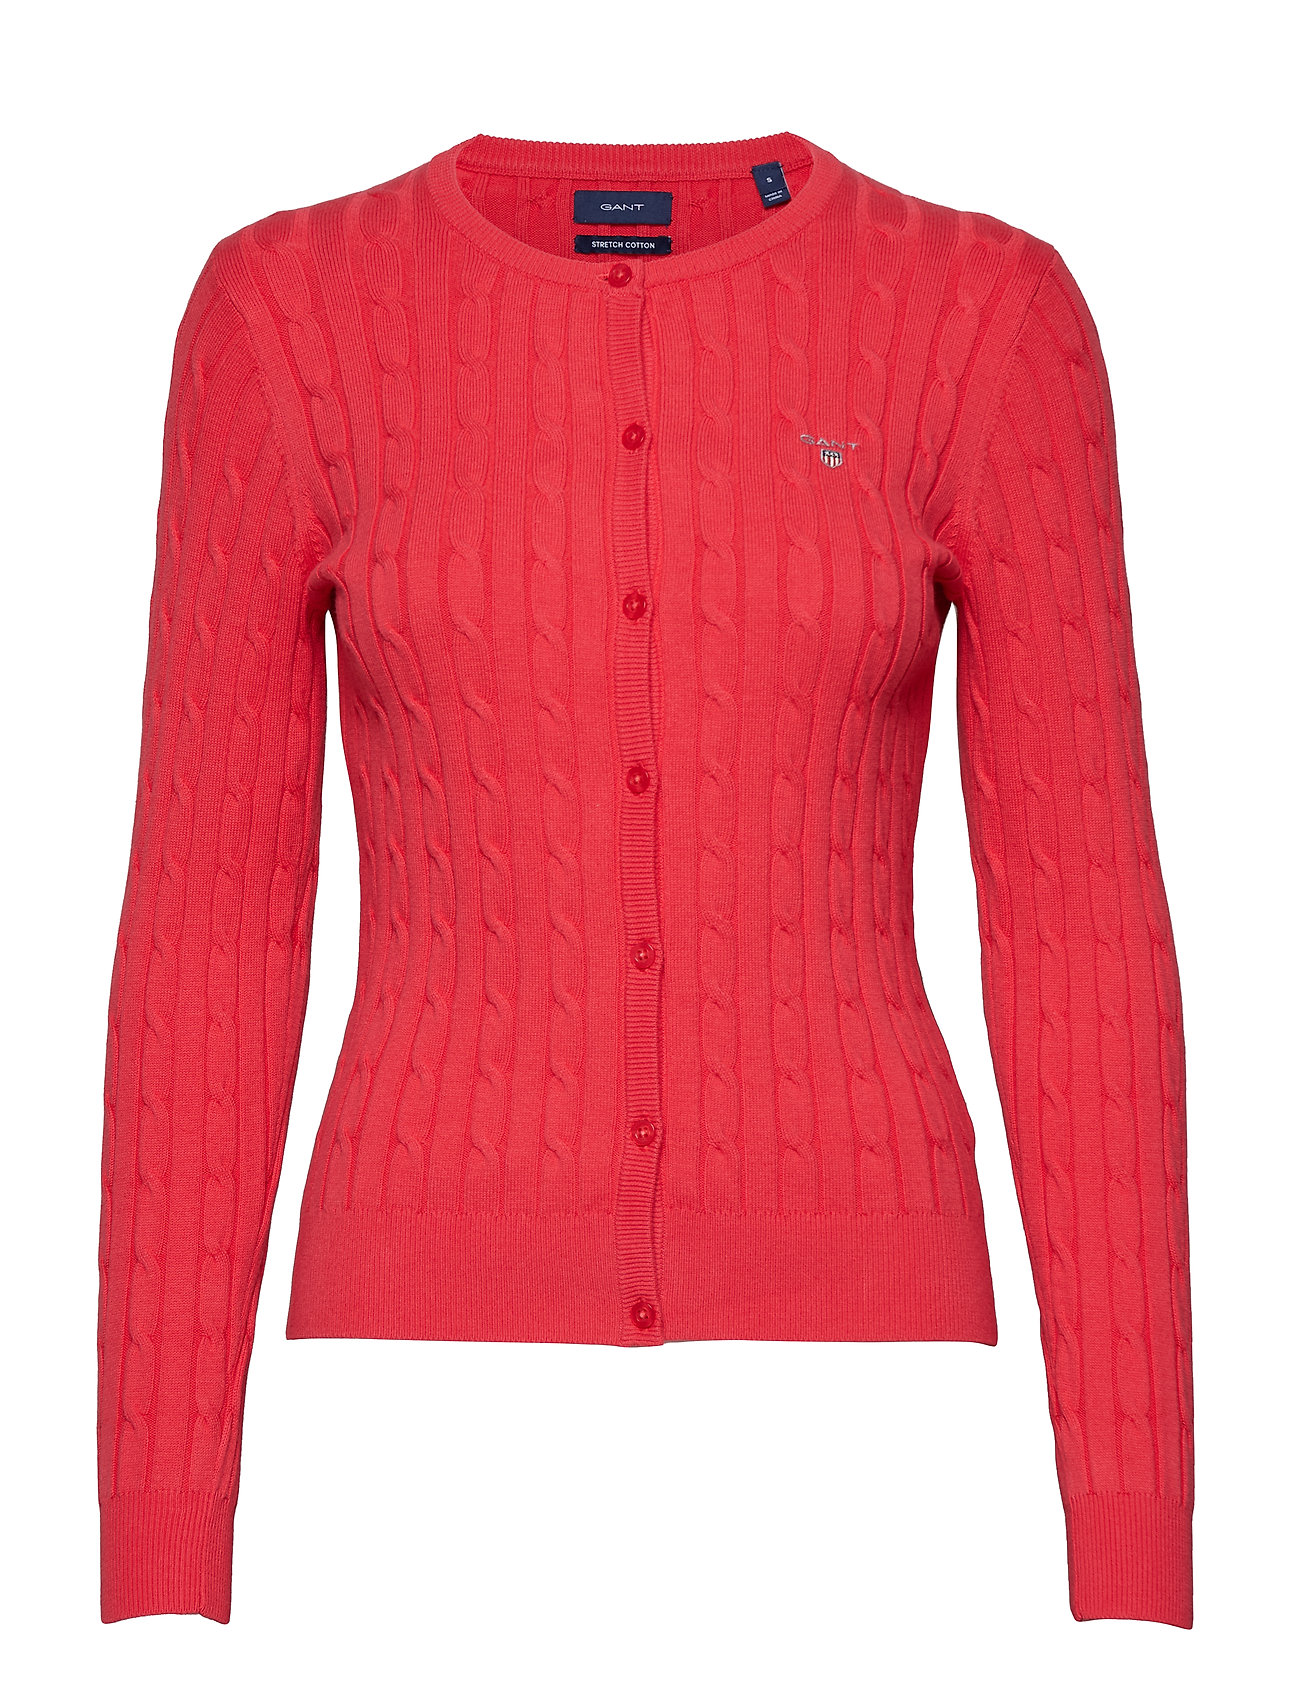 GANT STRETCH COTTON CABLE CREW CARDIGAN - WATERMELON RED